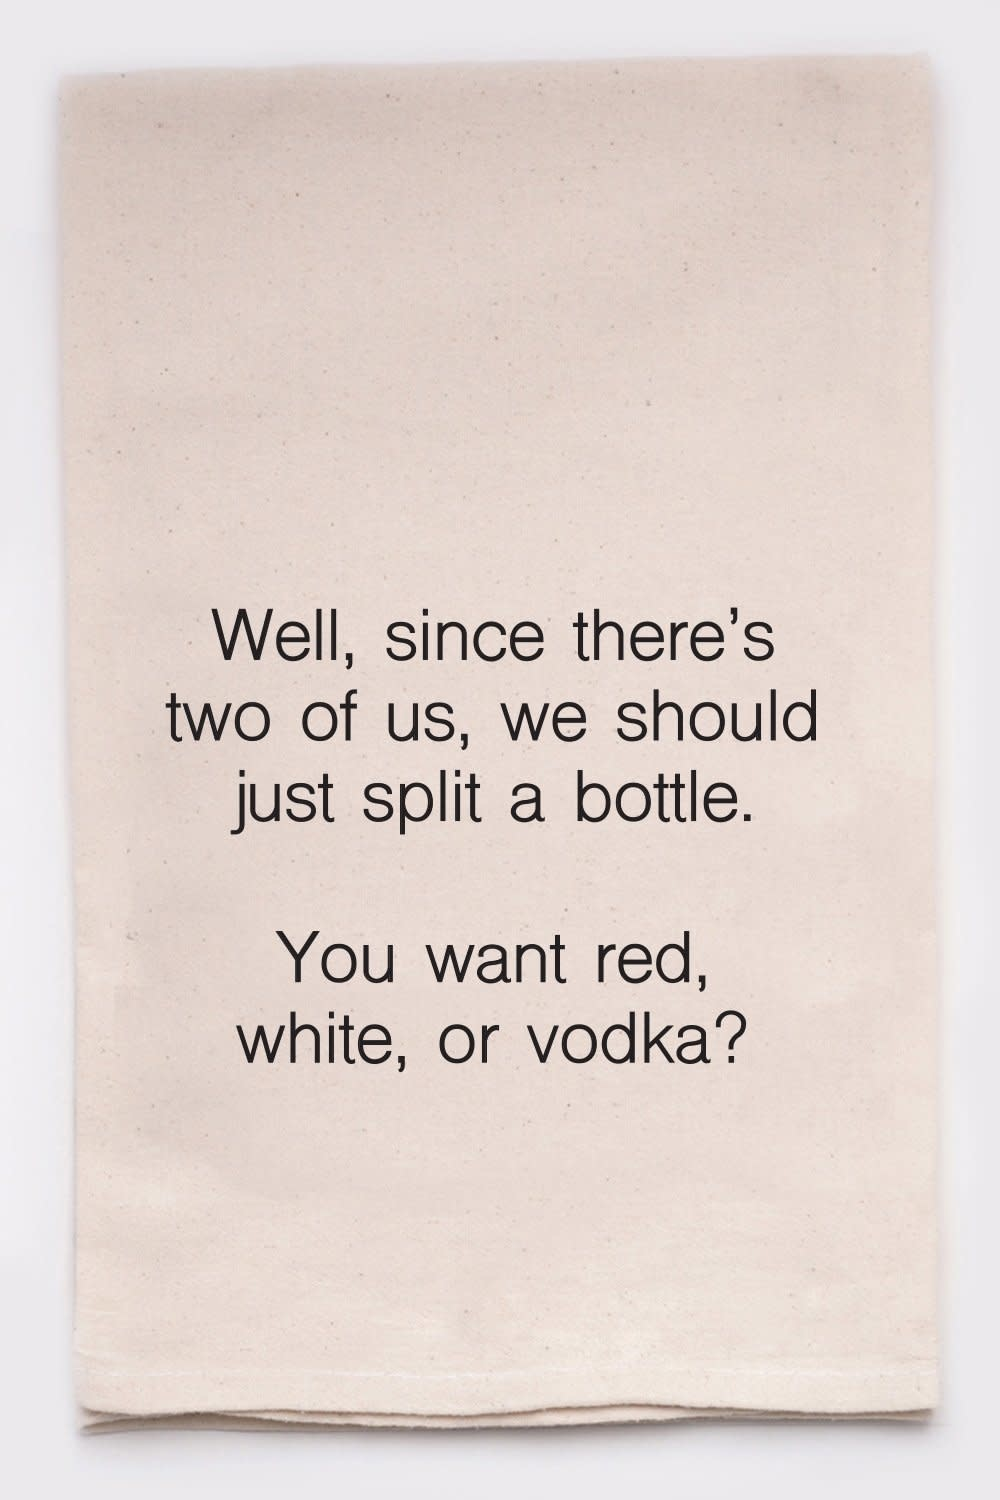 ELLEMBEE GIFT Dish Towels- Red, White, or Vodka